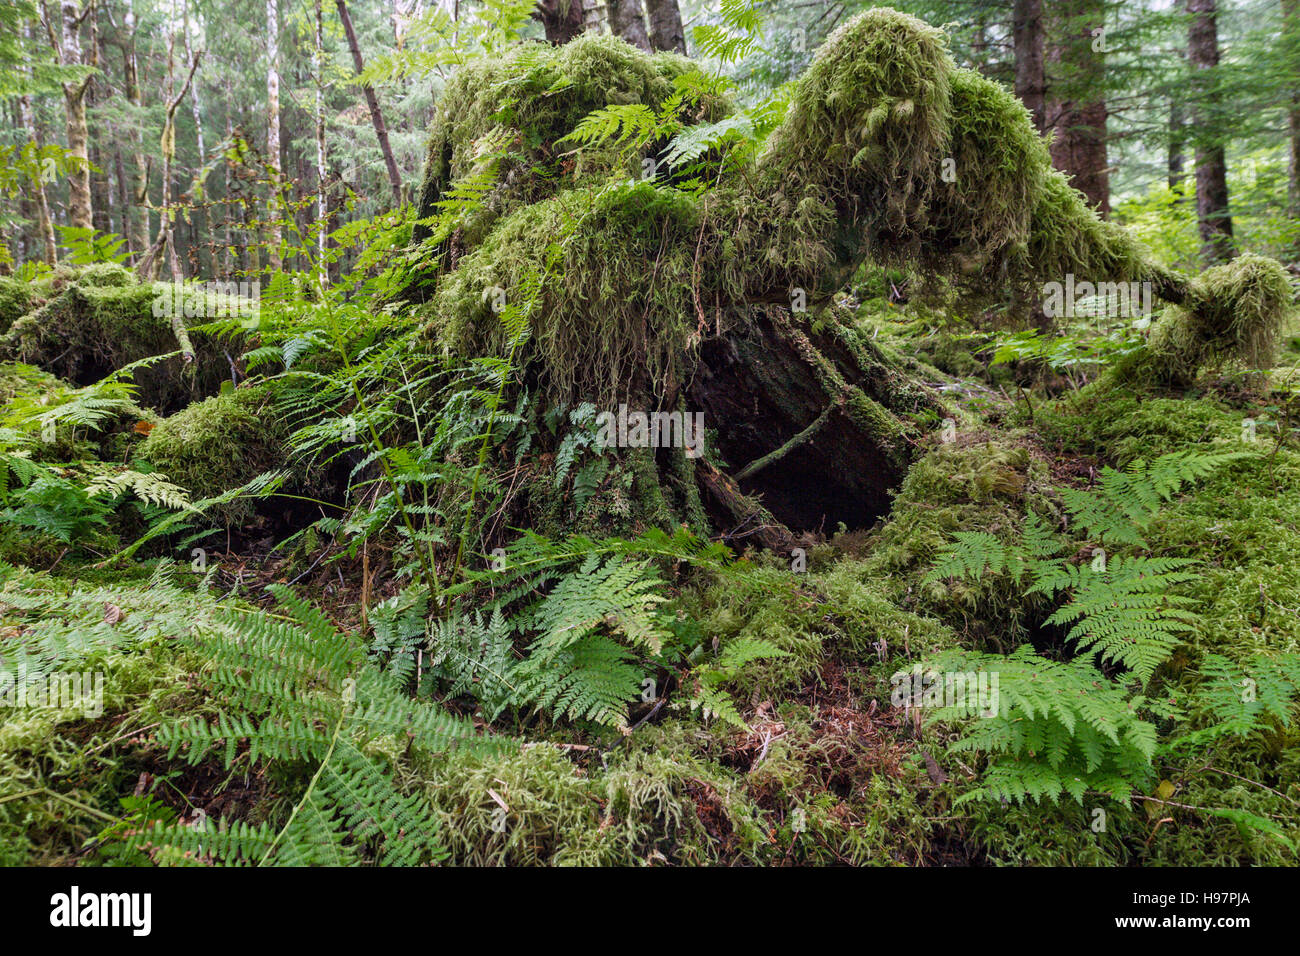 Moss covered tree stump, Tongass National Forest, Alaska - Stock Image